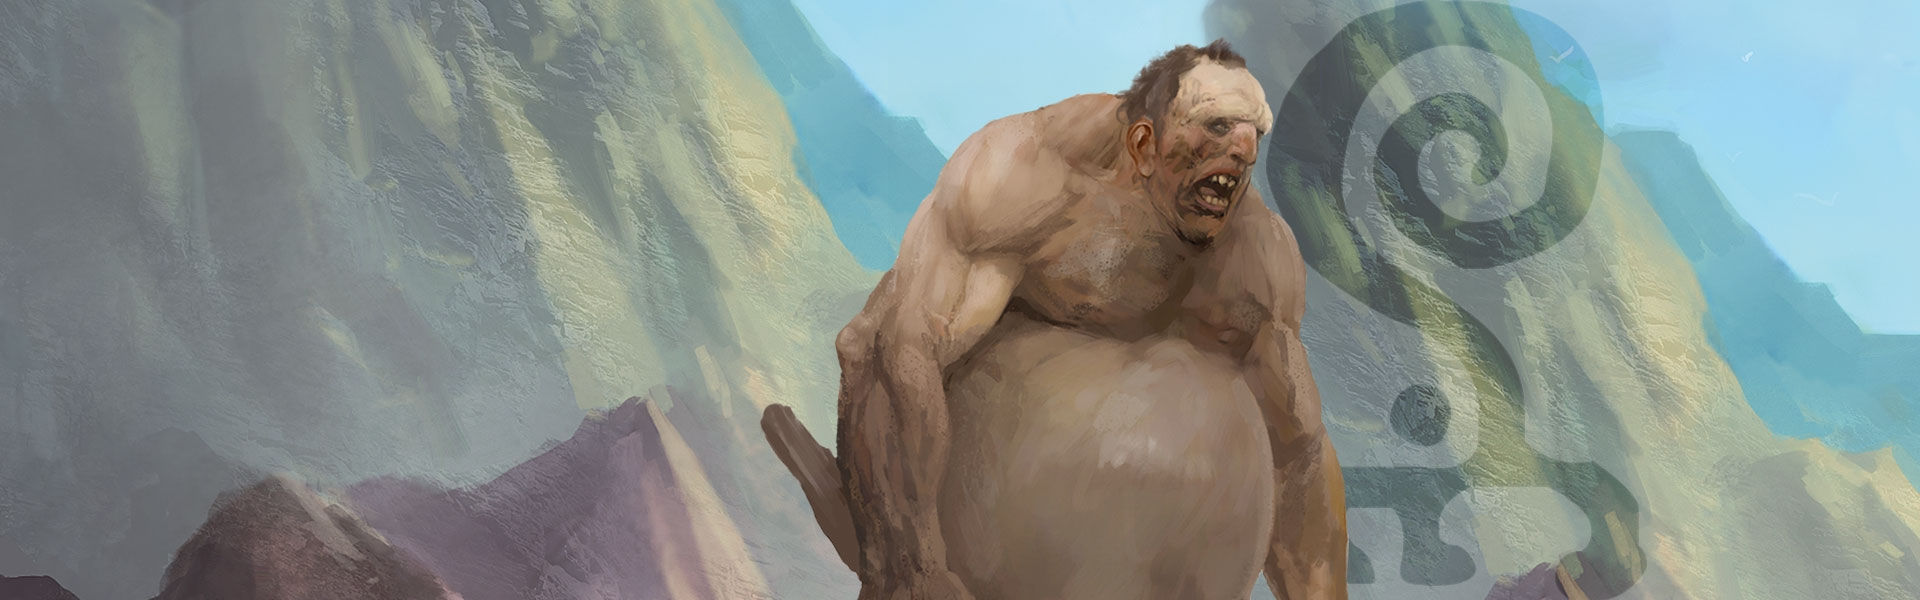 Hill_Giant_Subsection_Hero_Image